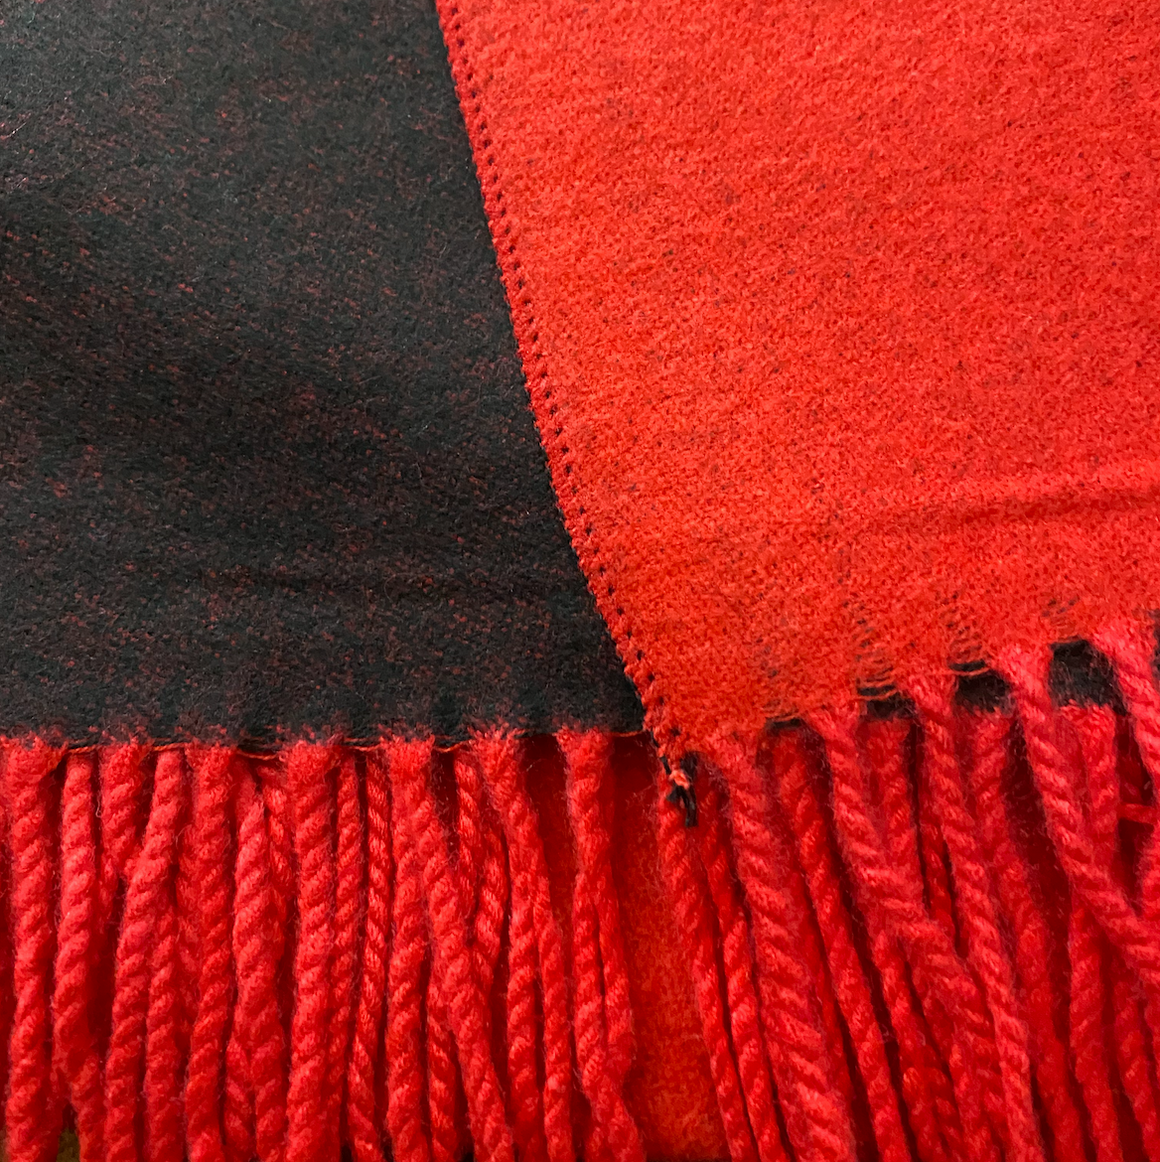 Winter Scarf - Red / Black (pre-order. Allow 2 weeks for fulfillment)